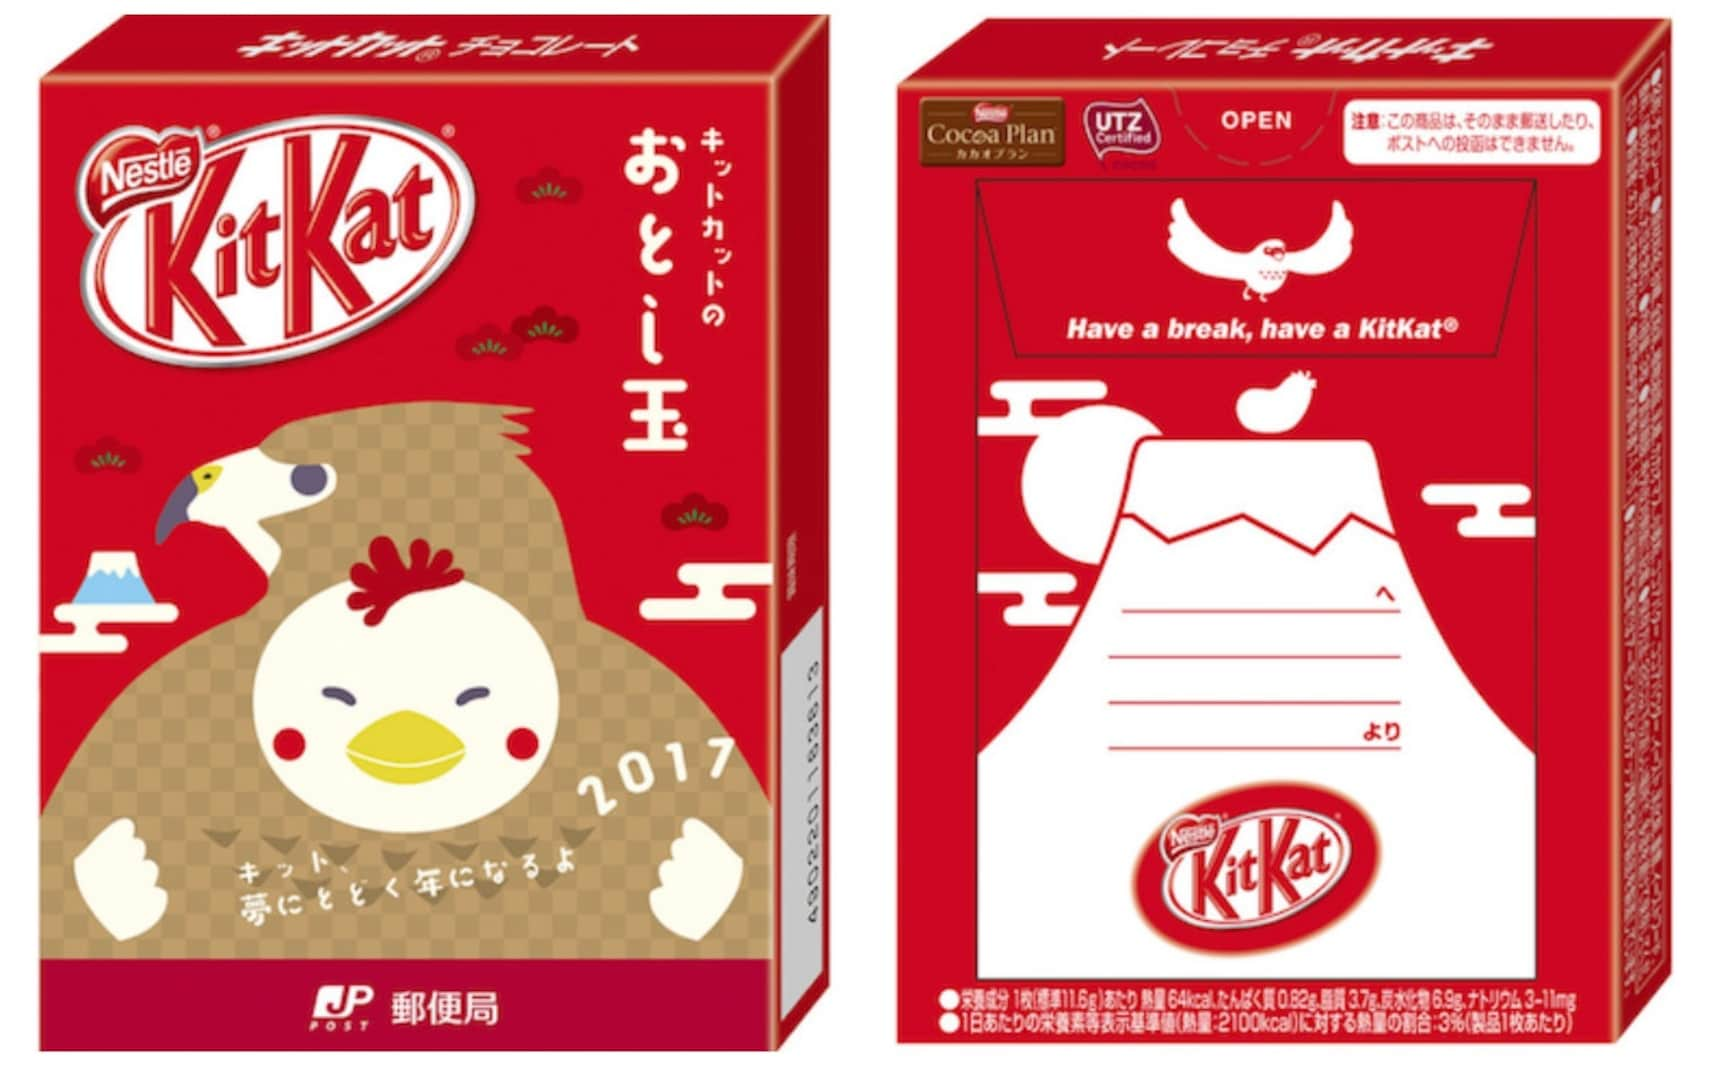 Bring in the New Year with Cute Kit Kat Boxes